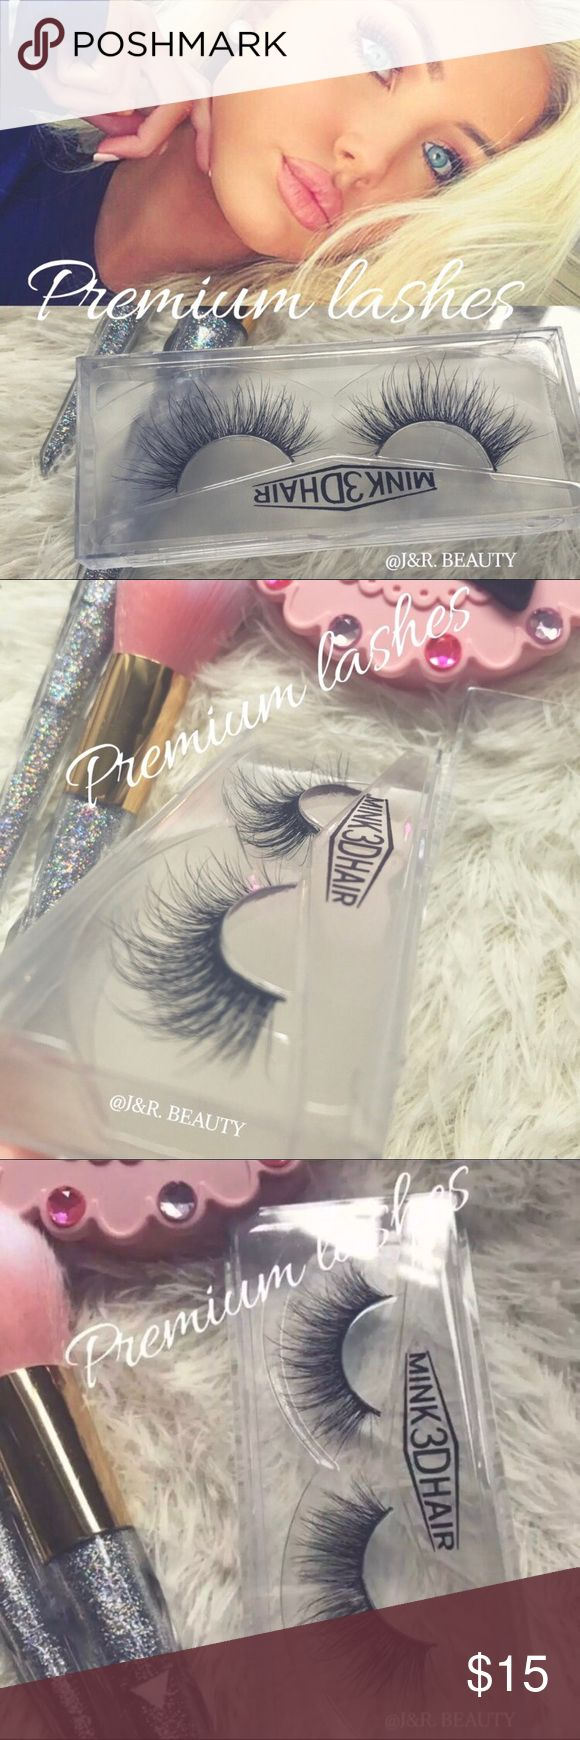 Premium Mink Eyelashes All brand new include  ✨PREMIUM 100% mink hair eyelashes 1 pair ✅super soft and comfortable  ✅super curl ✅super natural  Up to 25 wears with proper care❣️   +$2 Add on eyelash Applicator  +$3 Add on eyelash glue Please message me if you want to add them.    # tags Iconic, mink, red cherry eyelashes, house of lashes, doll, kawaii, case, full, natural,  Koko, Ardell, wispies, Demi , makeup, Makeup False Eyelashes